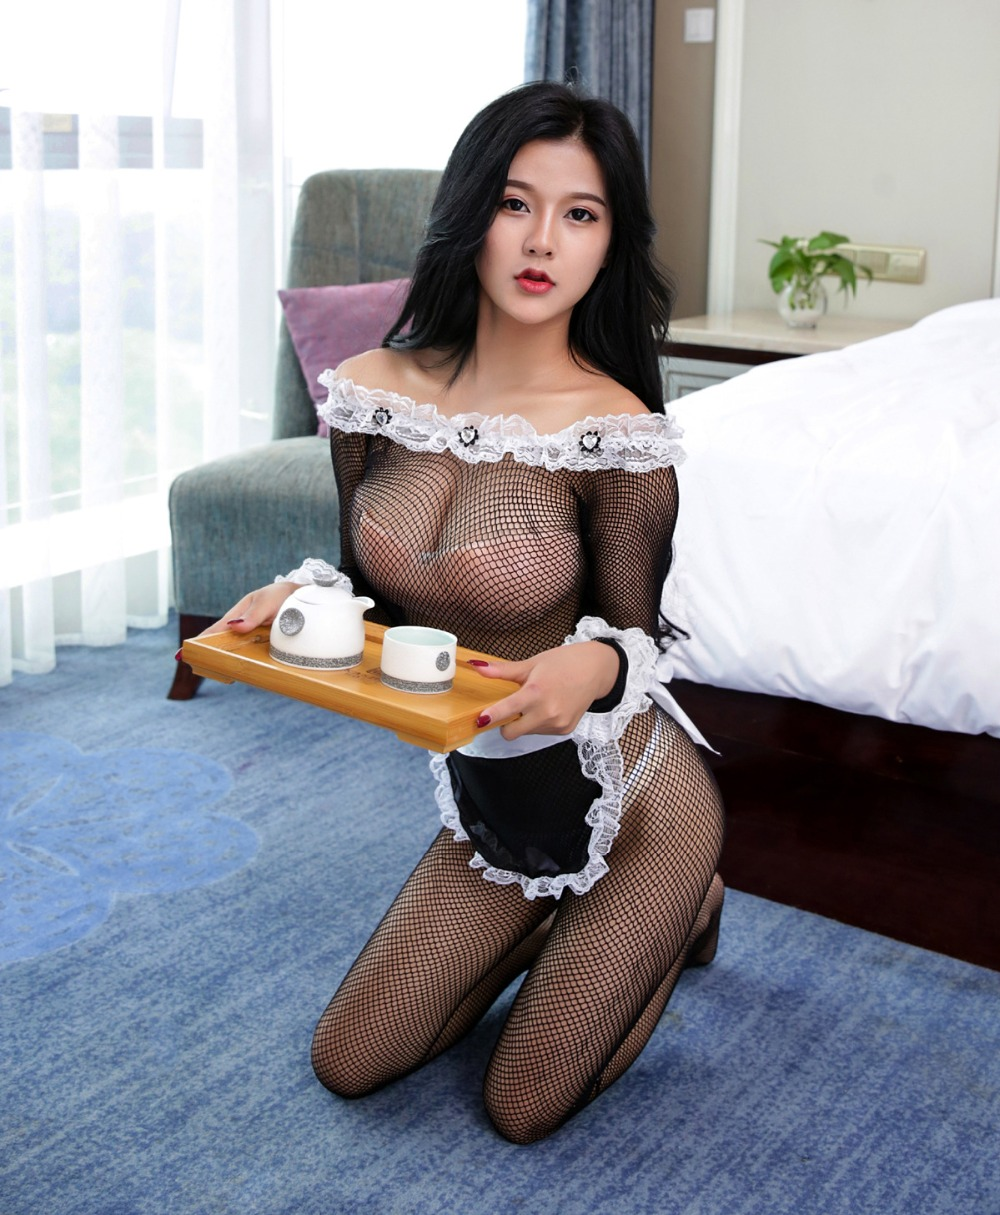 Sexy Maid Clothes Lolita Maid Outfit Black Lace Hot Sexy Lady Uniform temptation sexy costumes porn Adult Sex Games erotic image